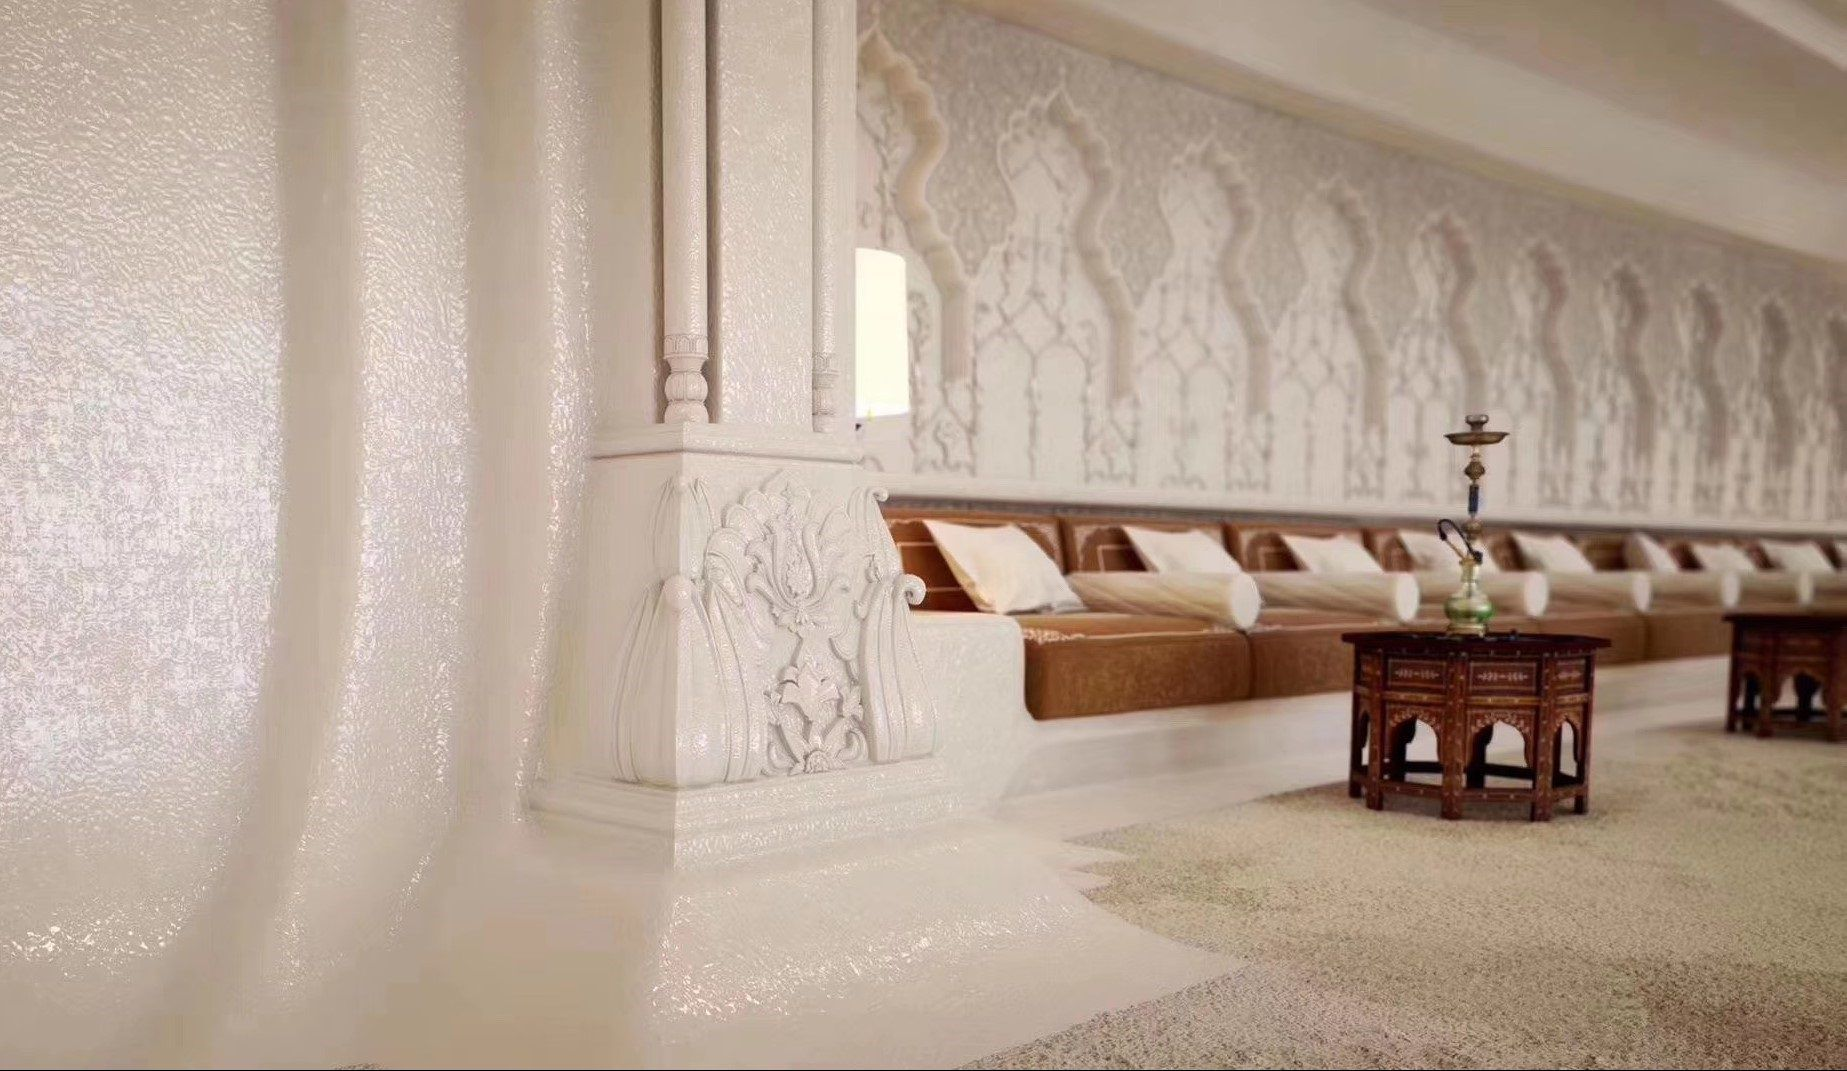 Leathered walls white marble